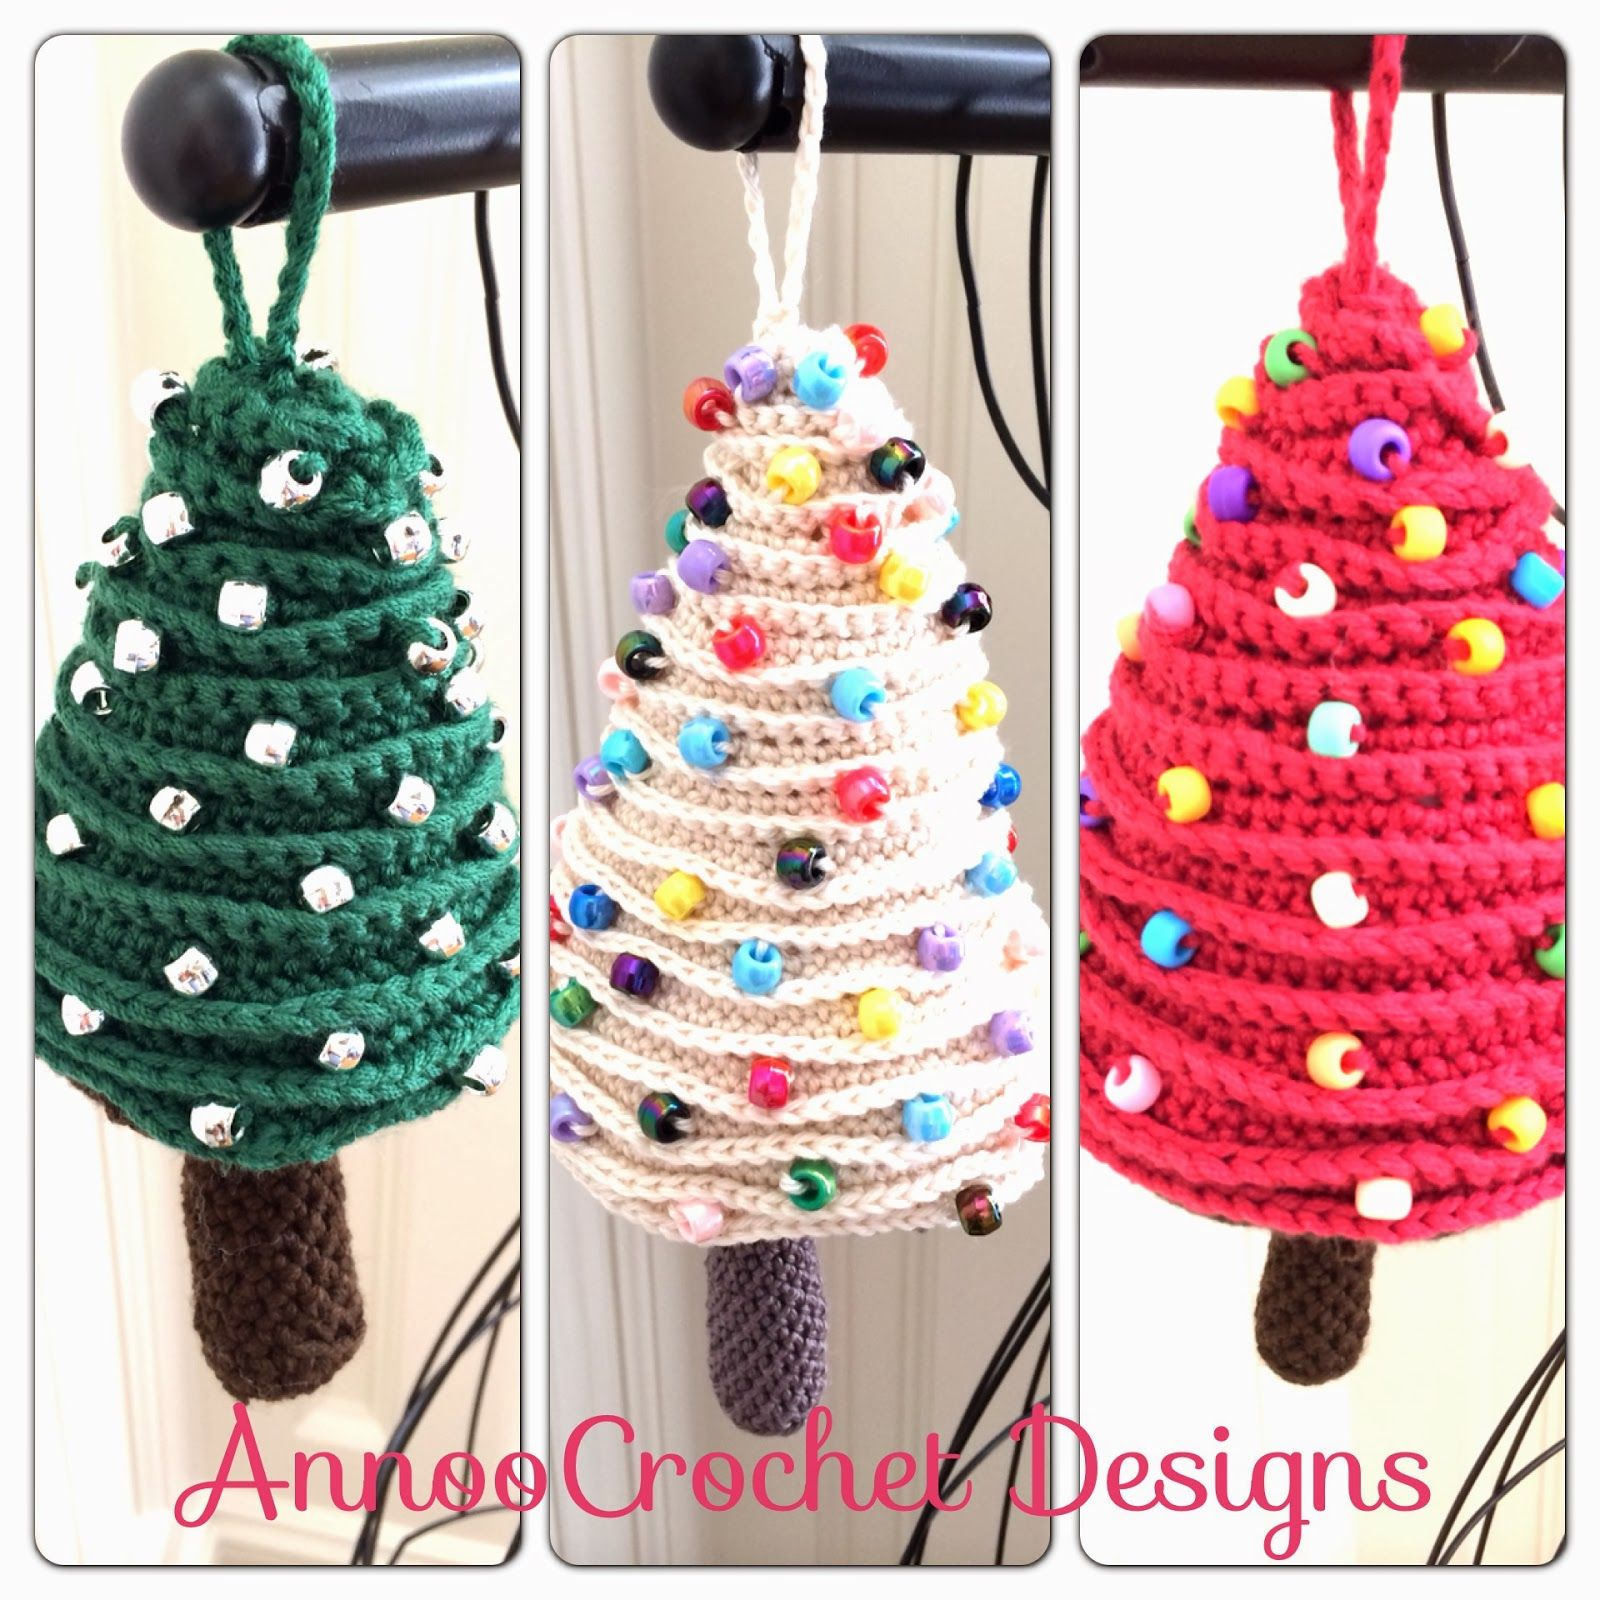 Crochet a cute christmas tree oranment created by annoos crochet crochet tree ornaments free pattern annoos crochet world bankloansurffo Choice Image